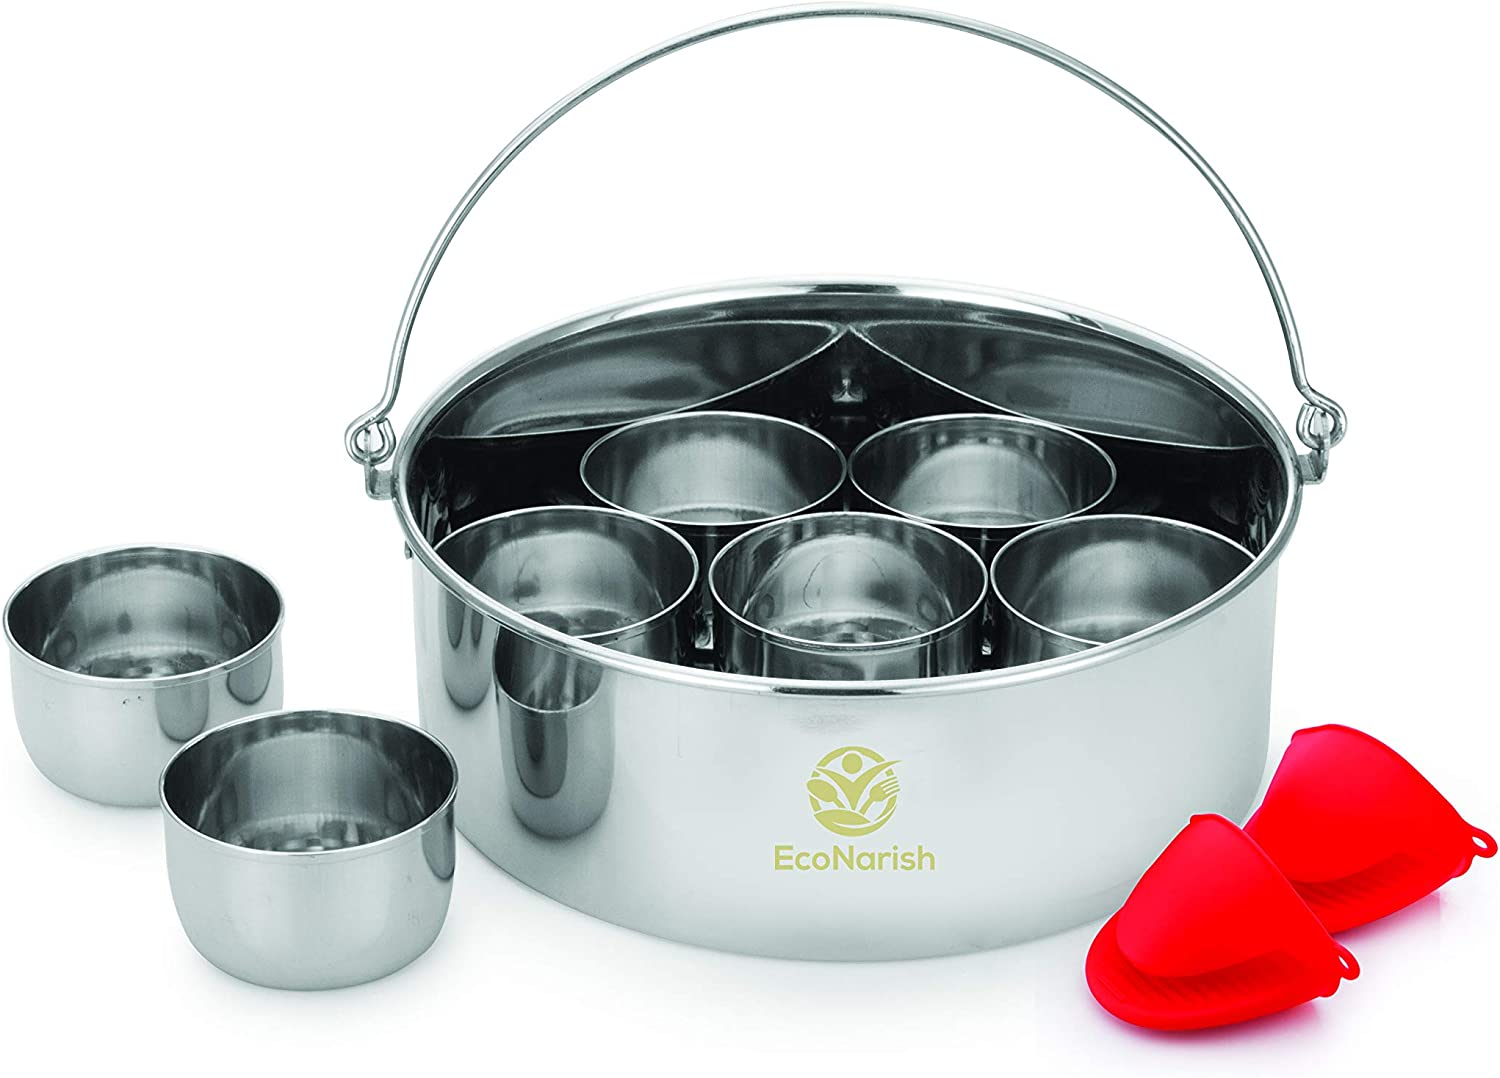 EcoNarish 6QT Cheesecake pan with 7 egg bite cupcake brownies bread pudding dessert molds with removable bottom oven mitts - Compatible with 6QT Instant Pot Accessories